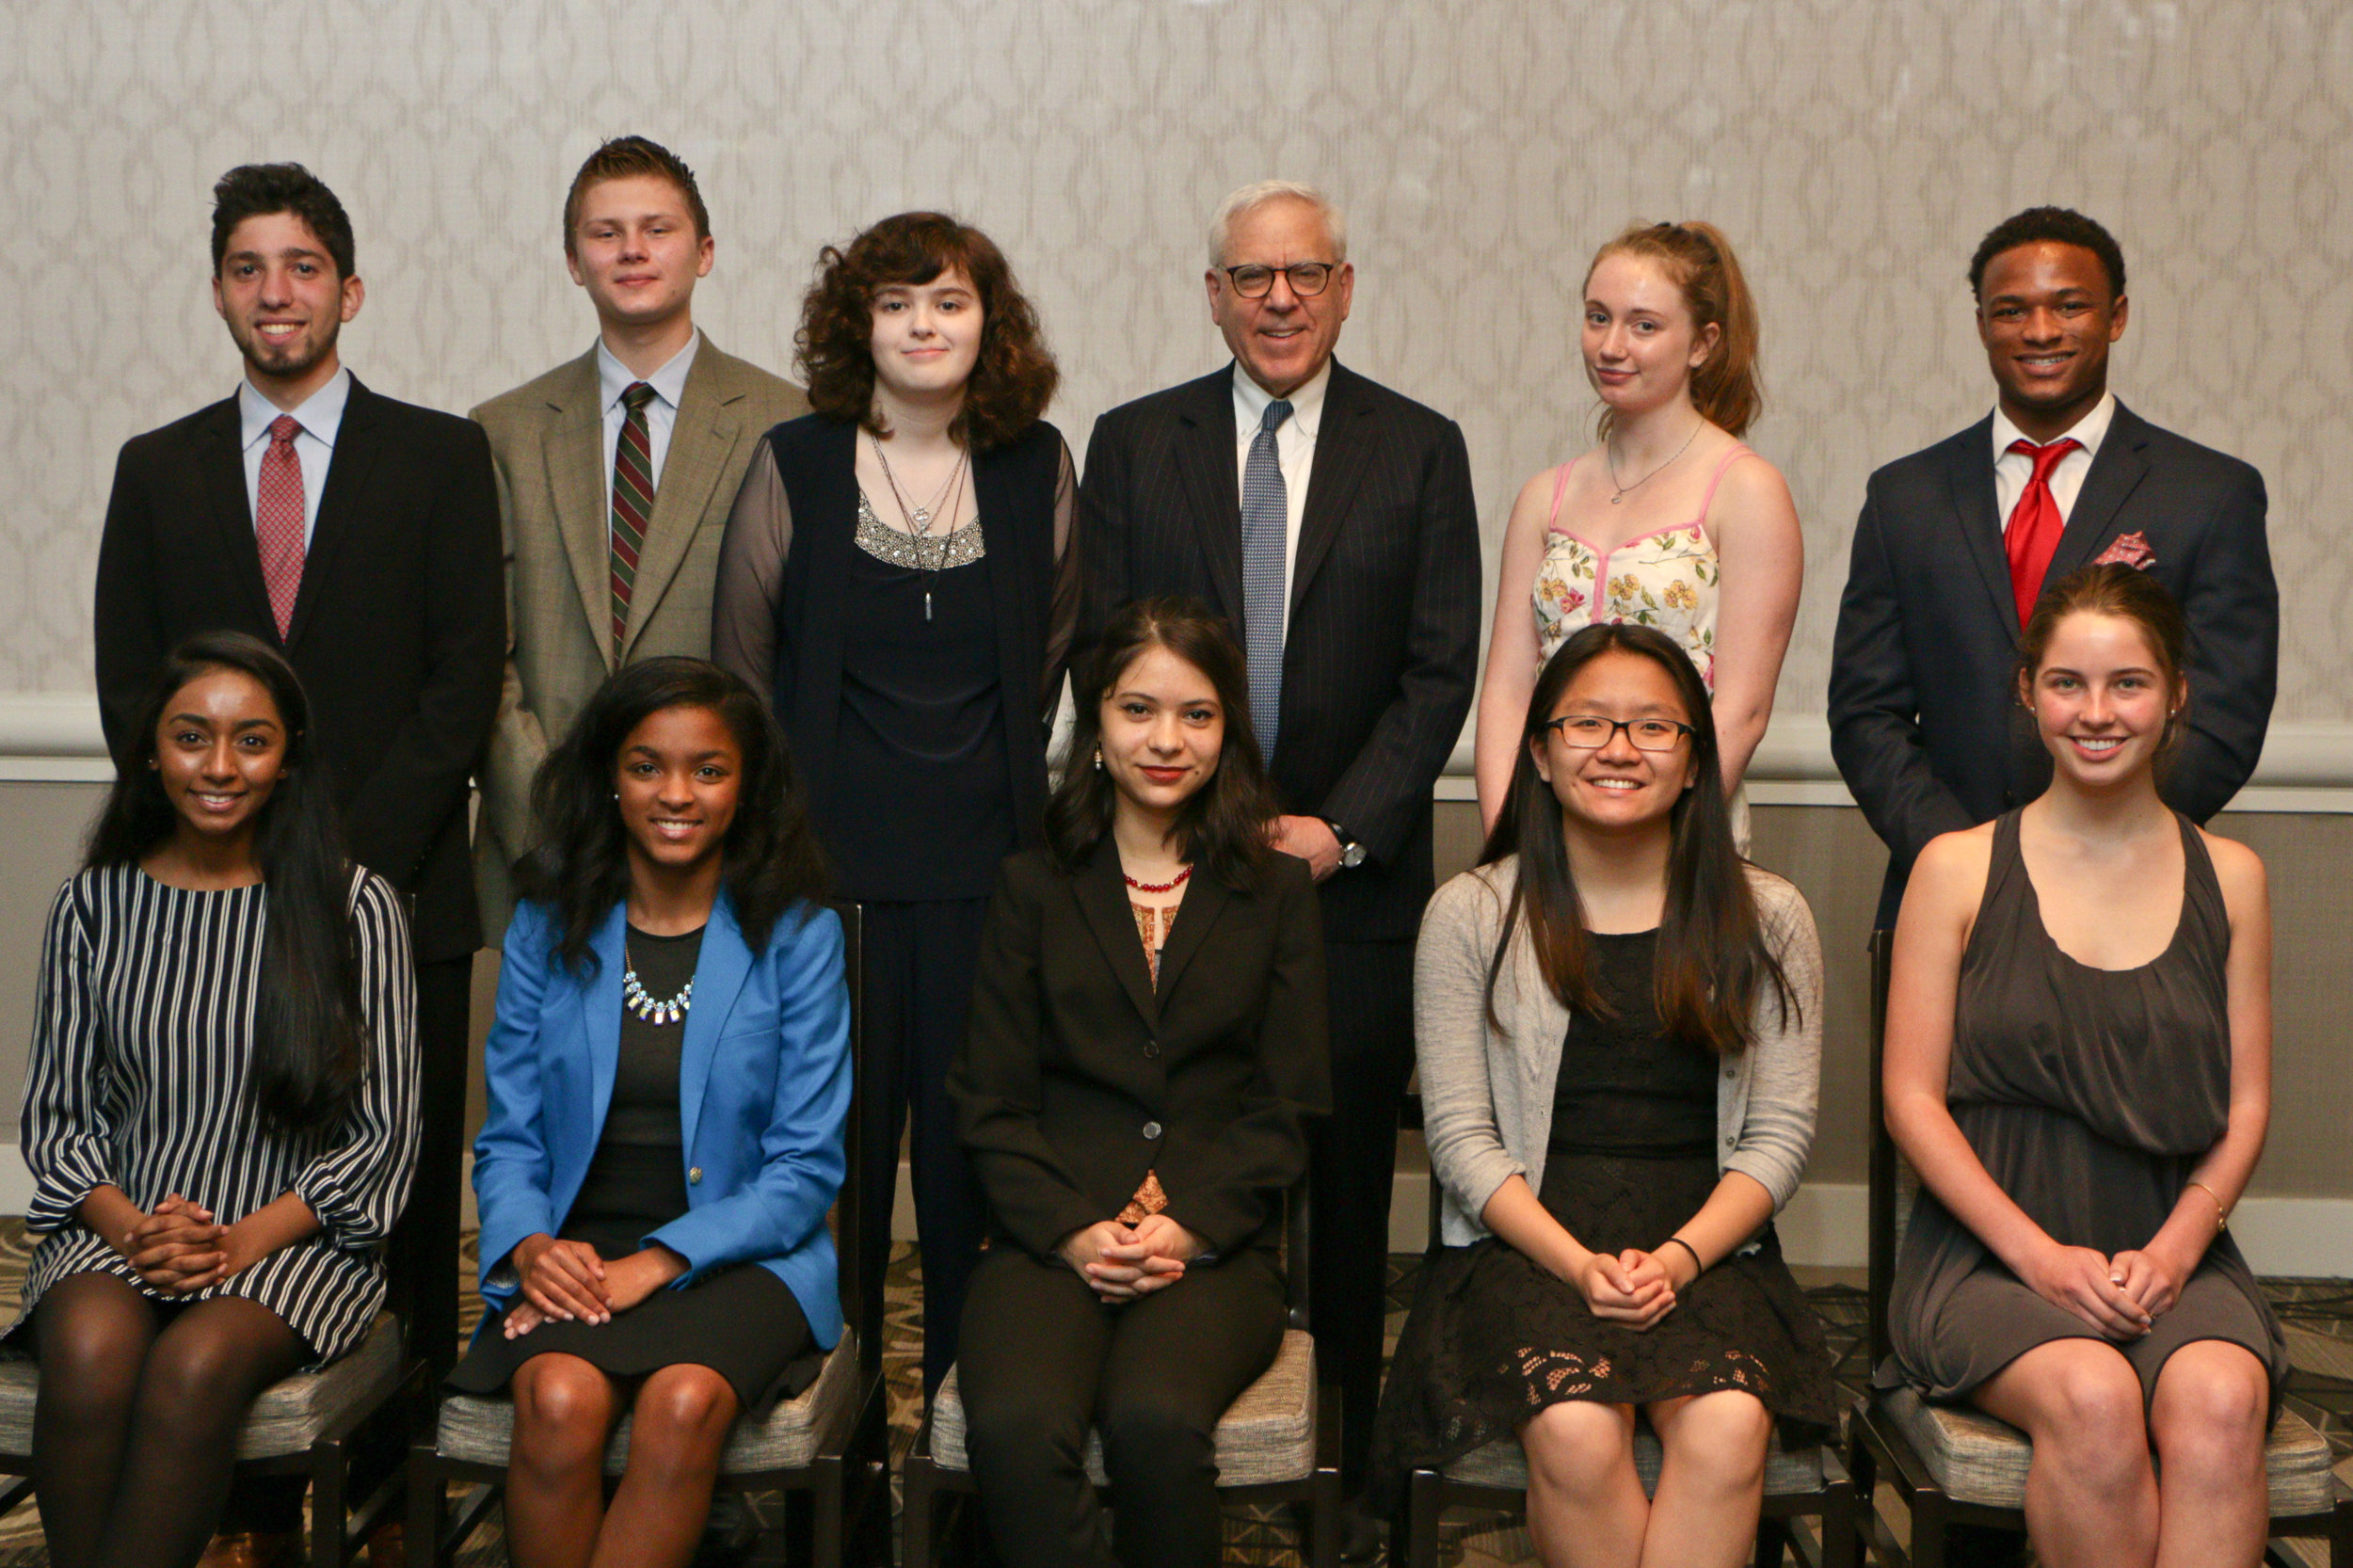 Back row from left: Isaac Frumkin, Matthew Evenson, Cara Schultz, Competition sponsor David M. Rubenstein, Emilia Majersik, and Mike Grimes. Front row from left: Fariha Bablu, Zoree Jones, grand prize winner Riya Ashby, Amanda Liu, and Emily Stein.